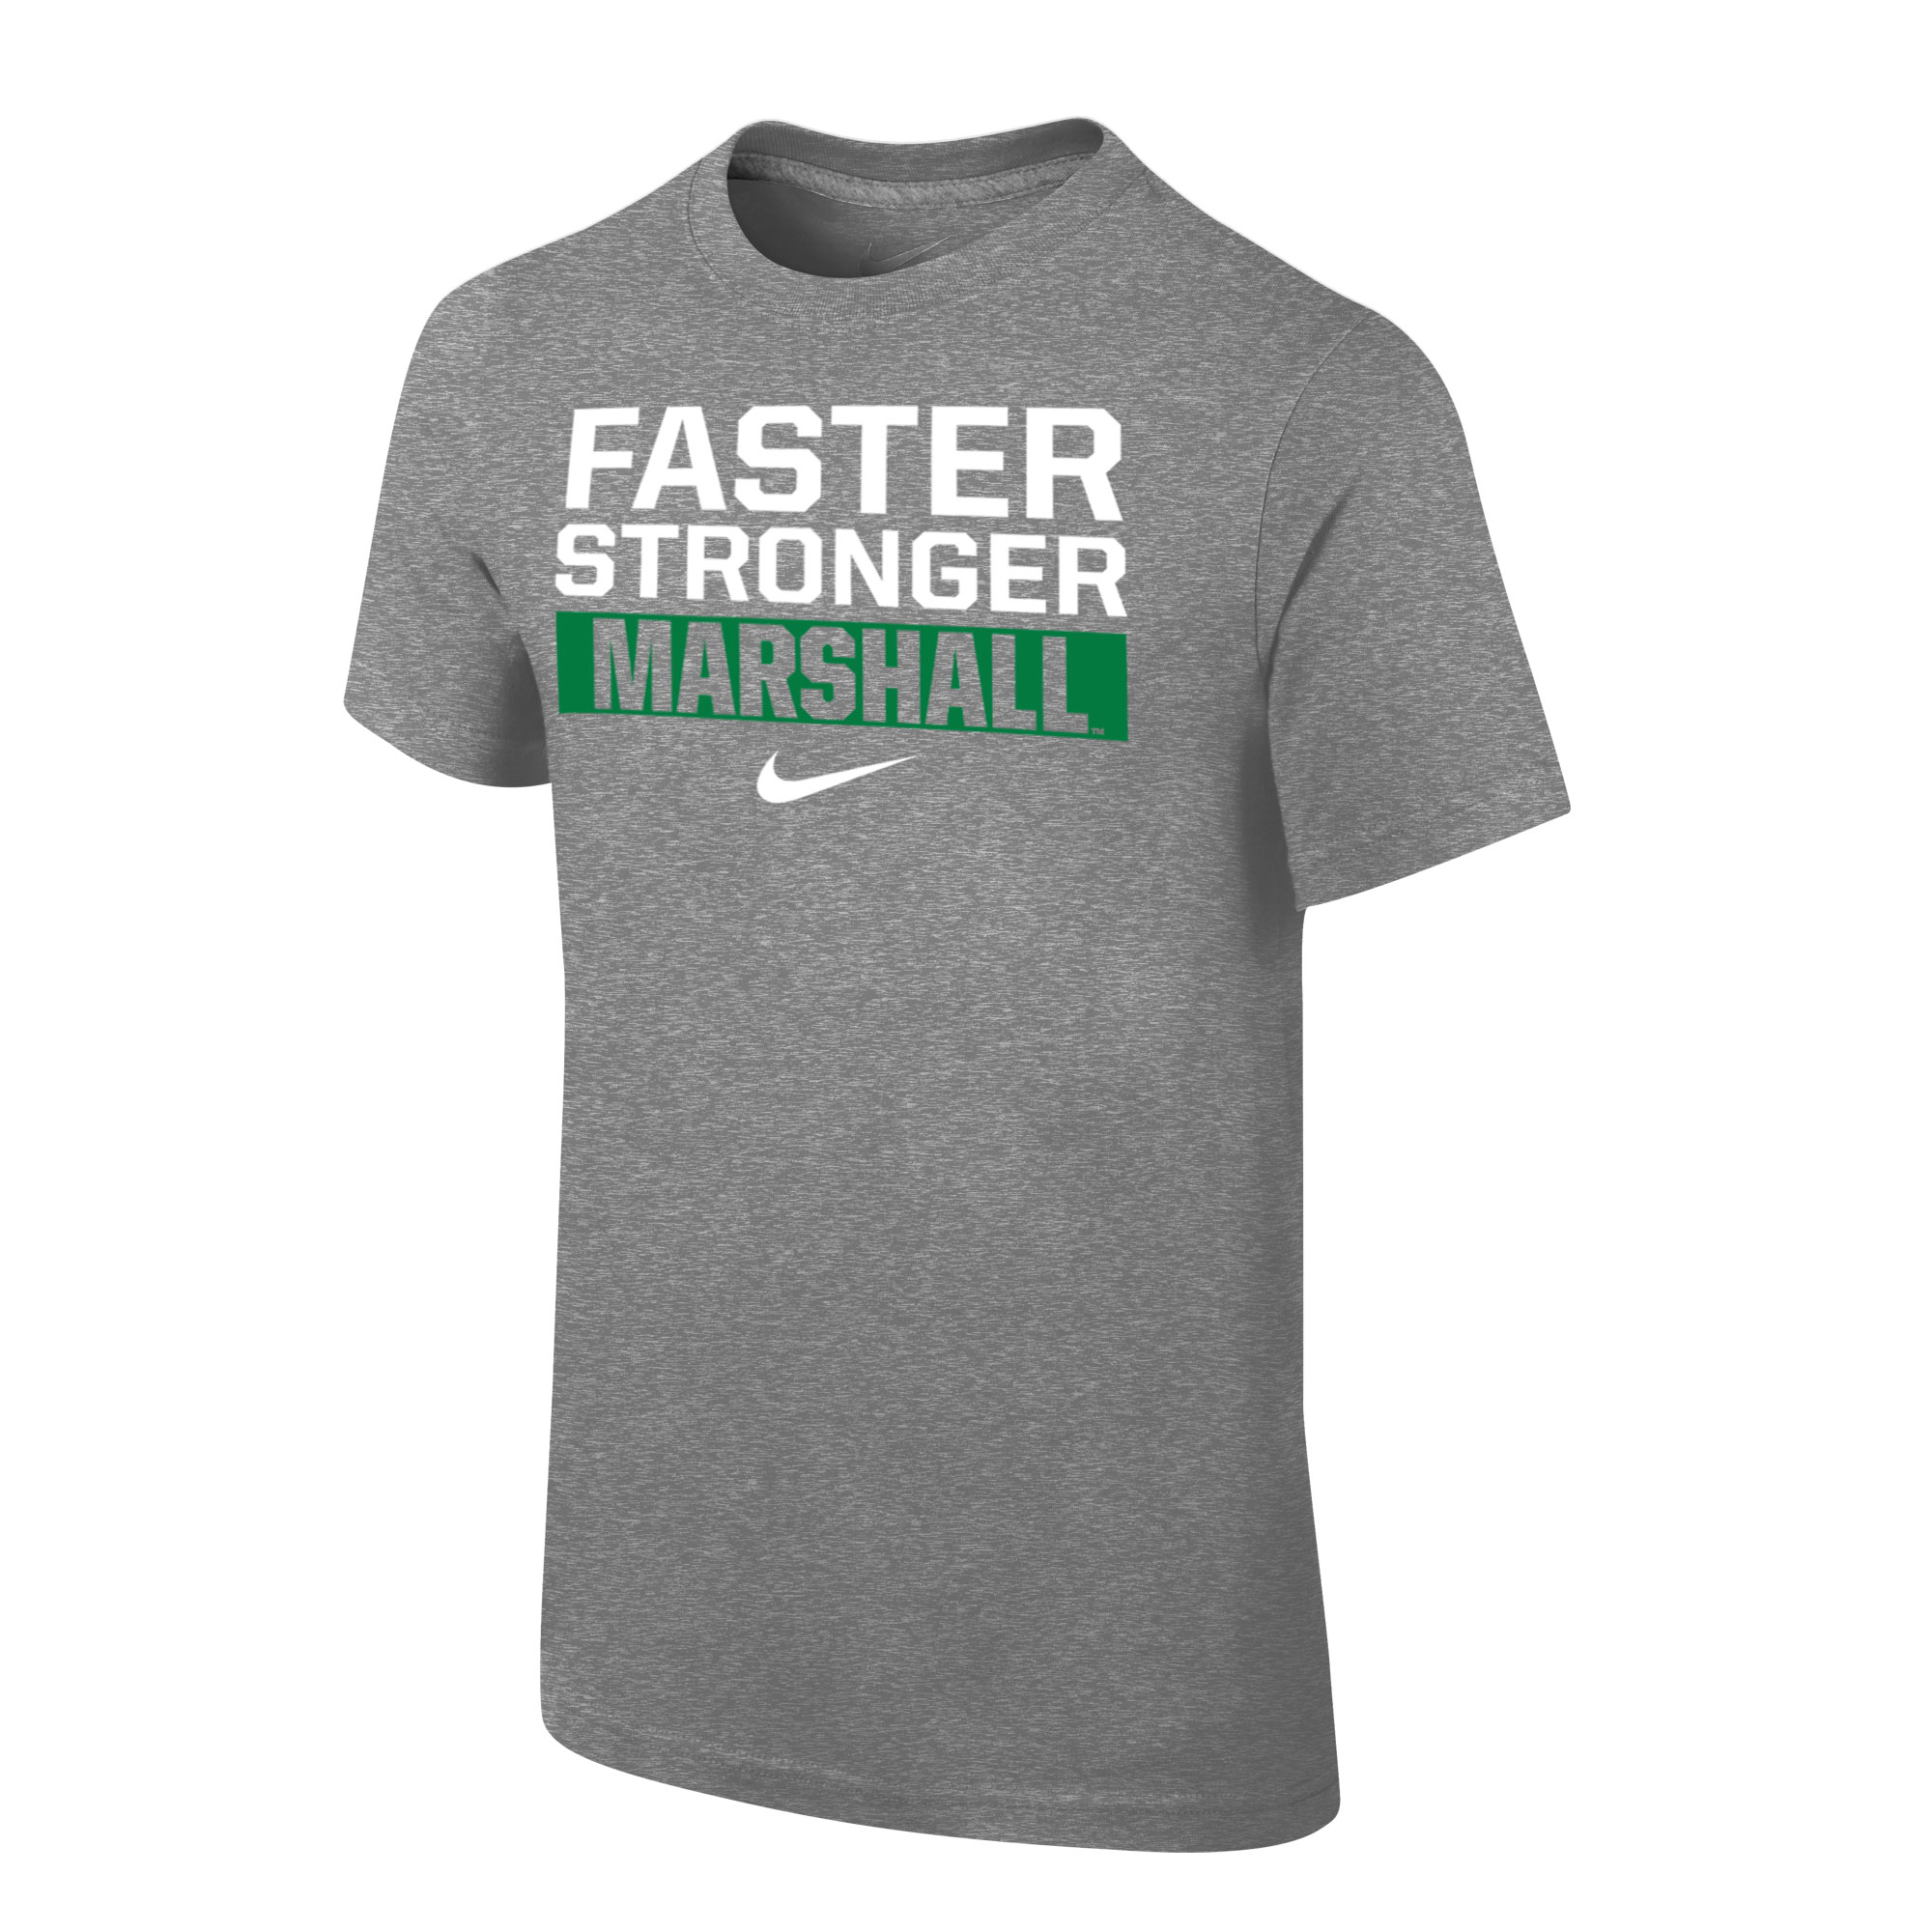 Nike <br> Core T <br> 20235 <br> S-XL <br> $25.99